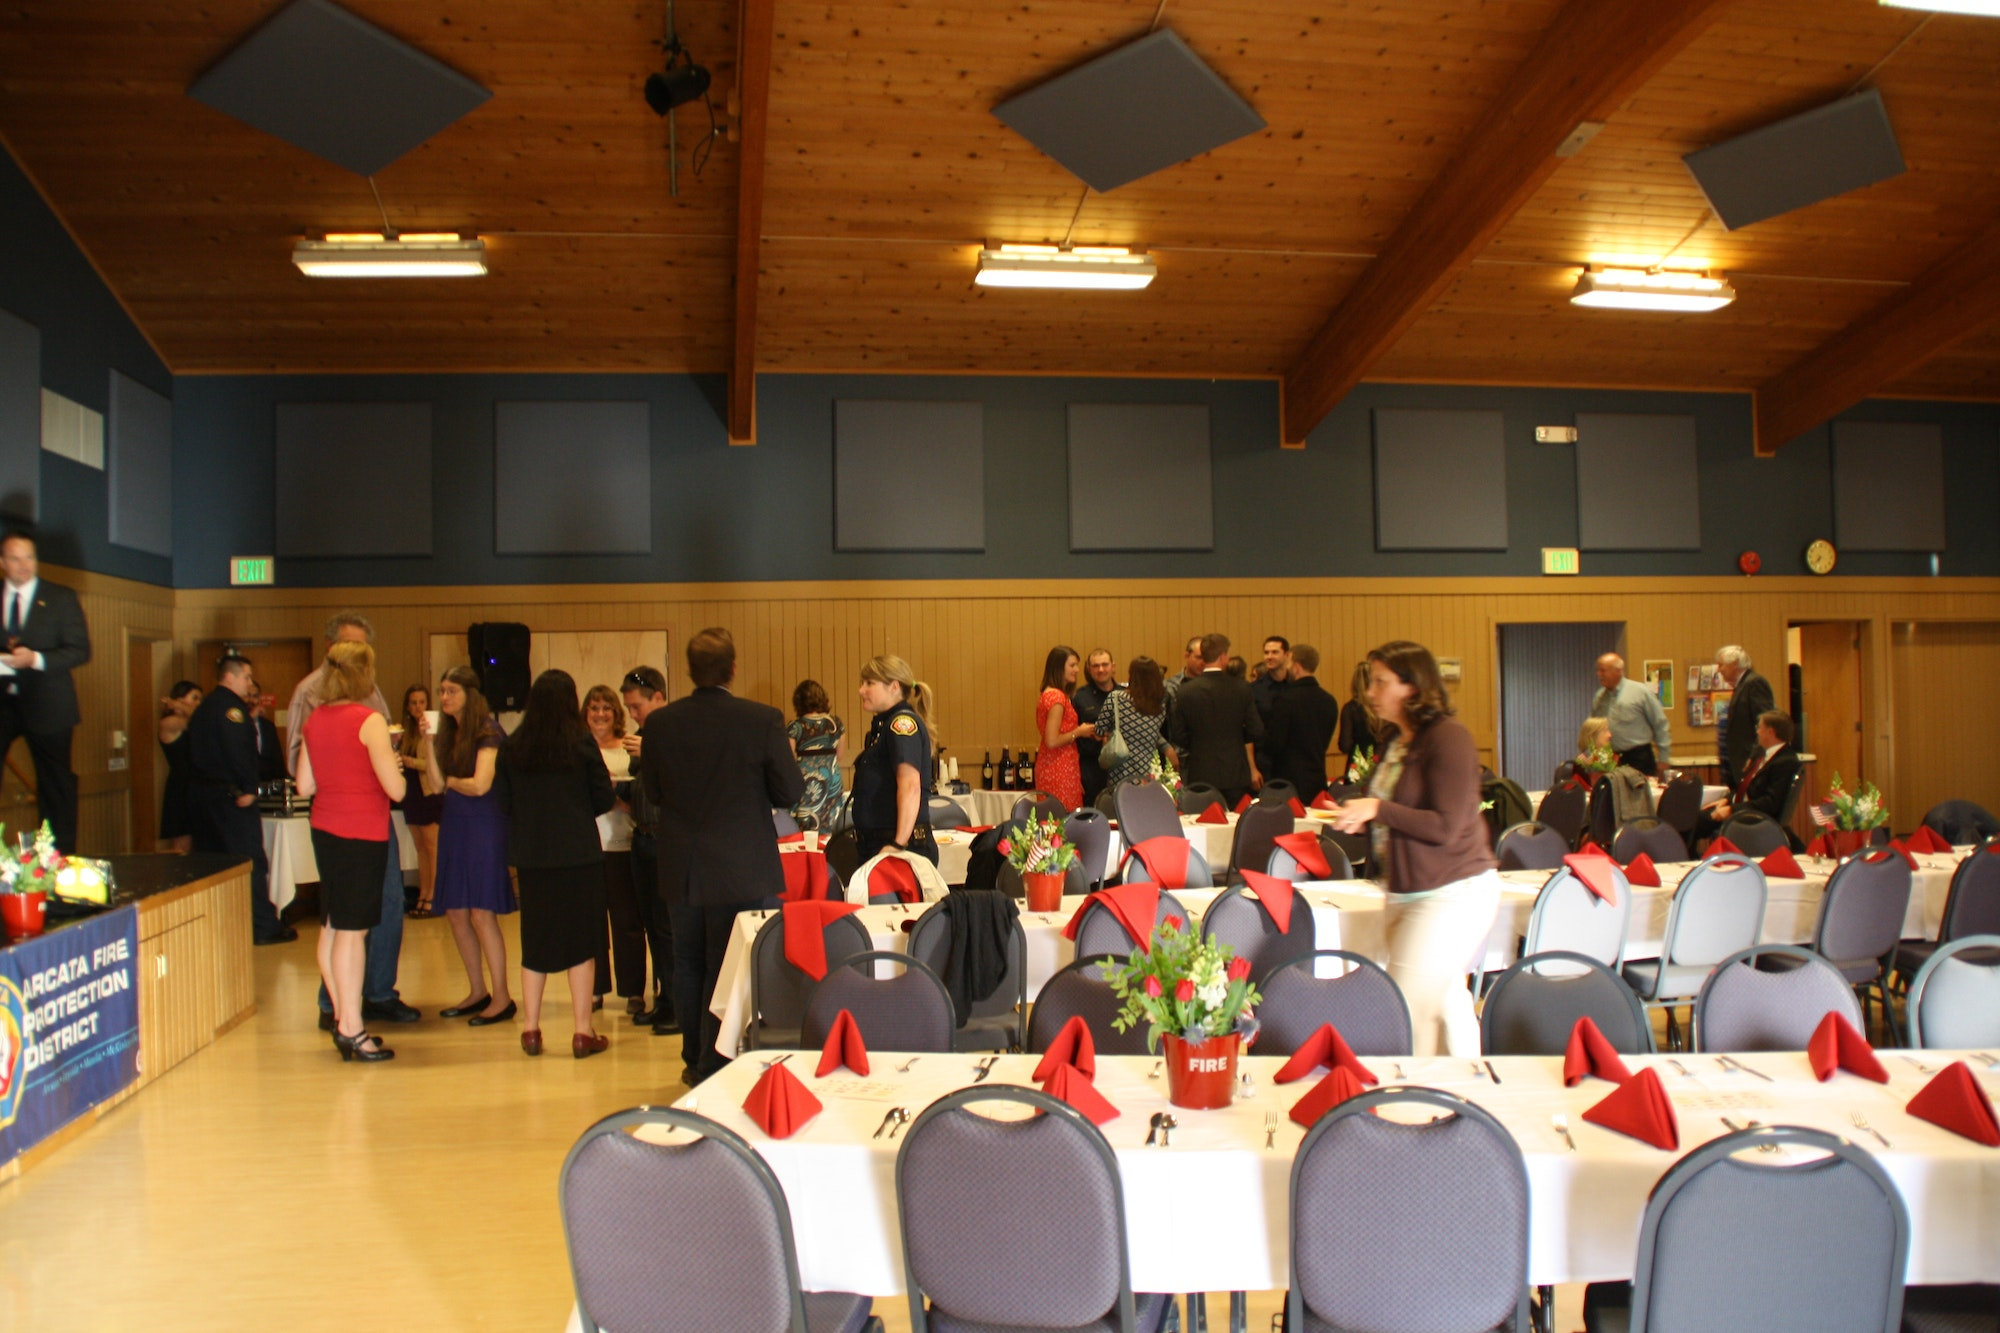 Crowd of people at a banquet.